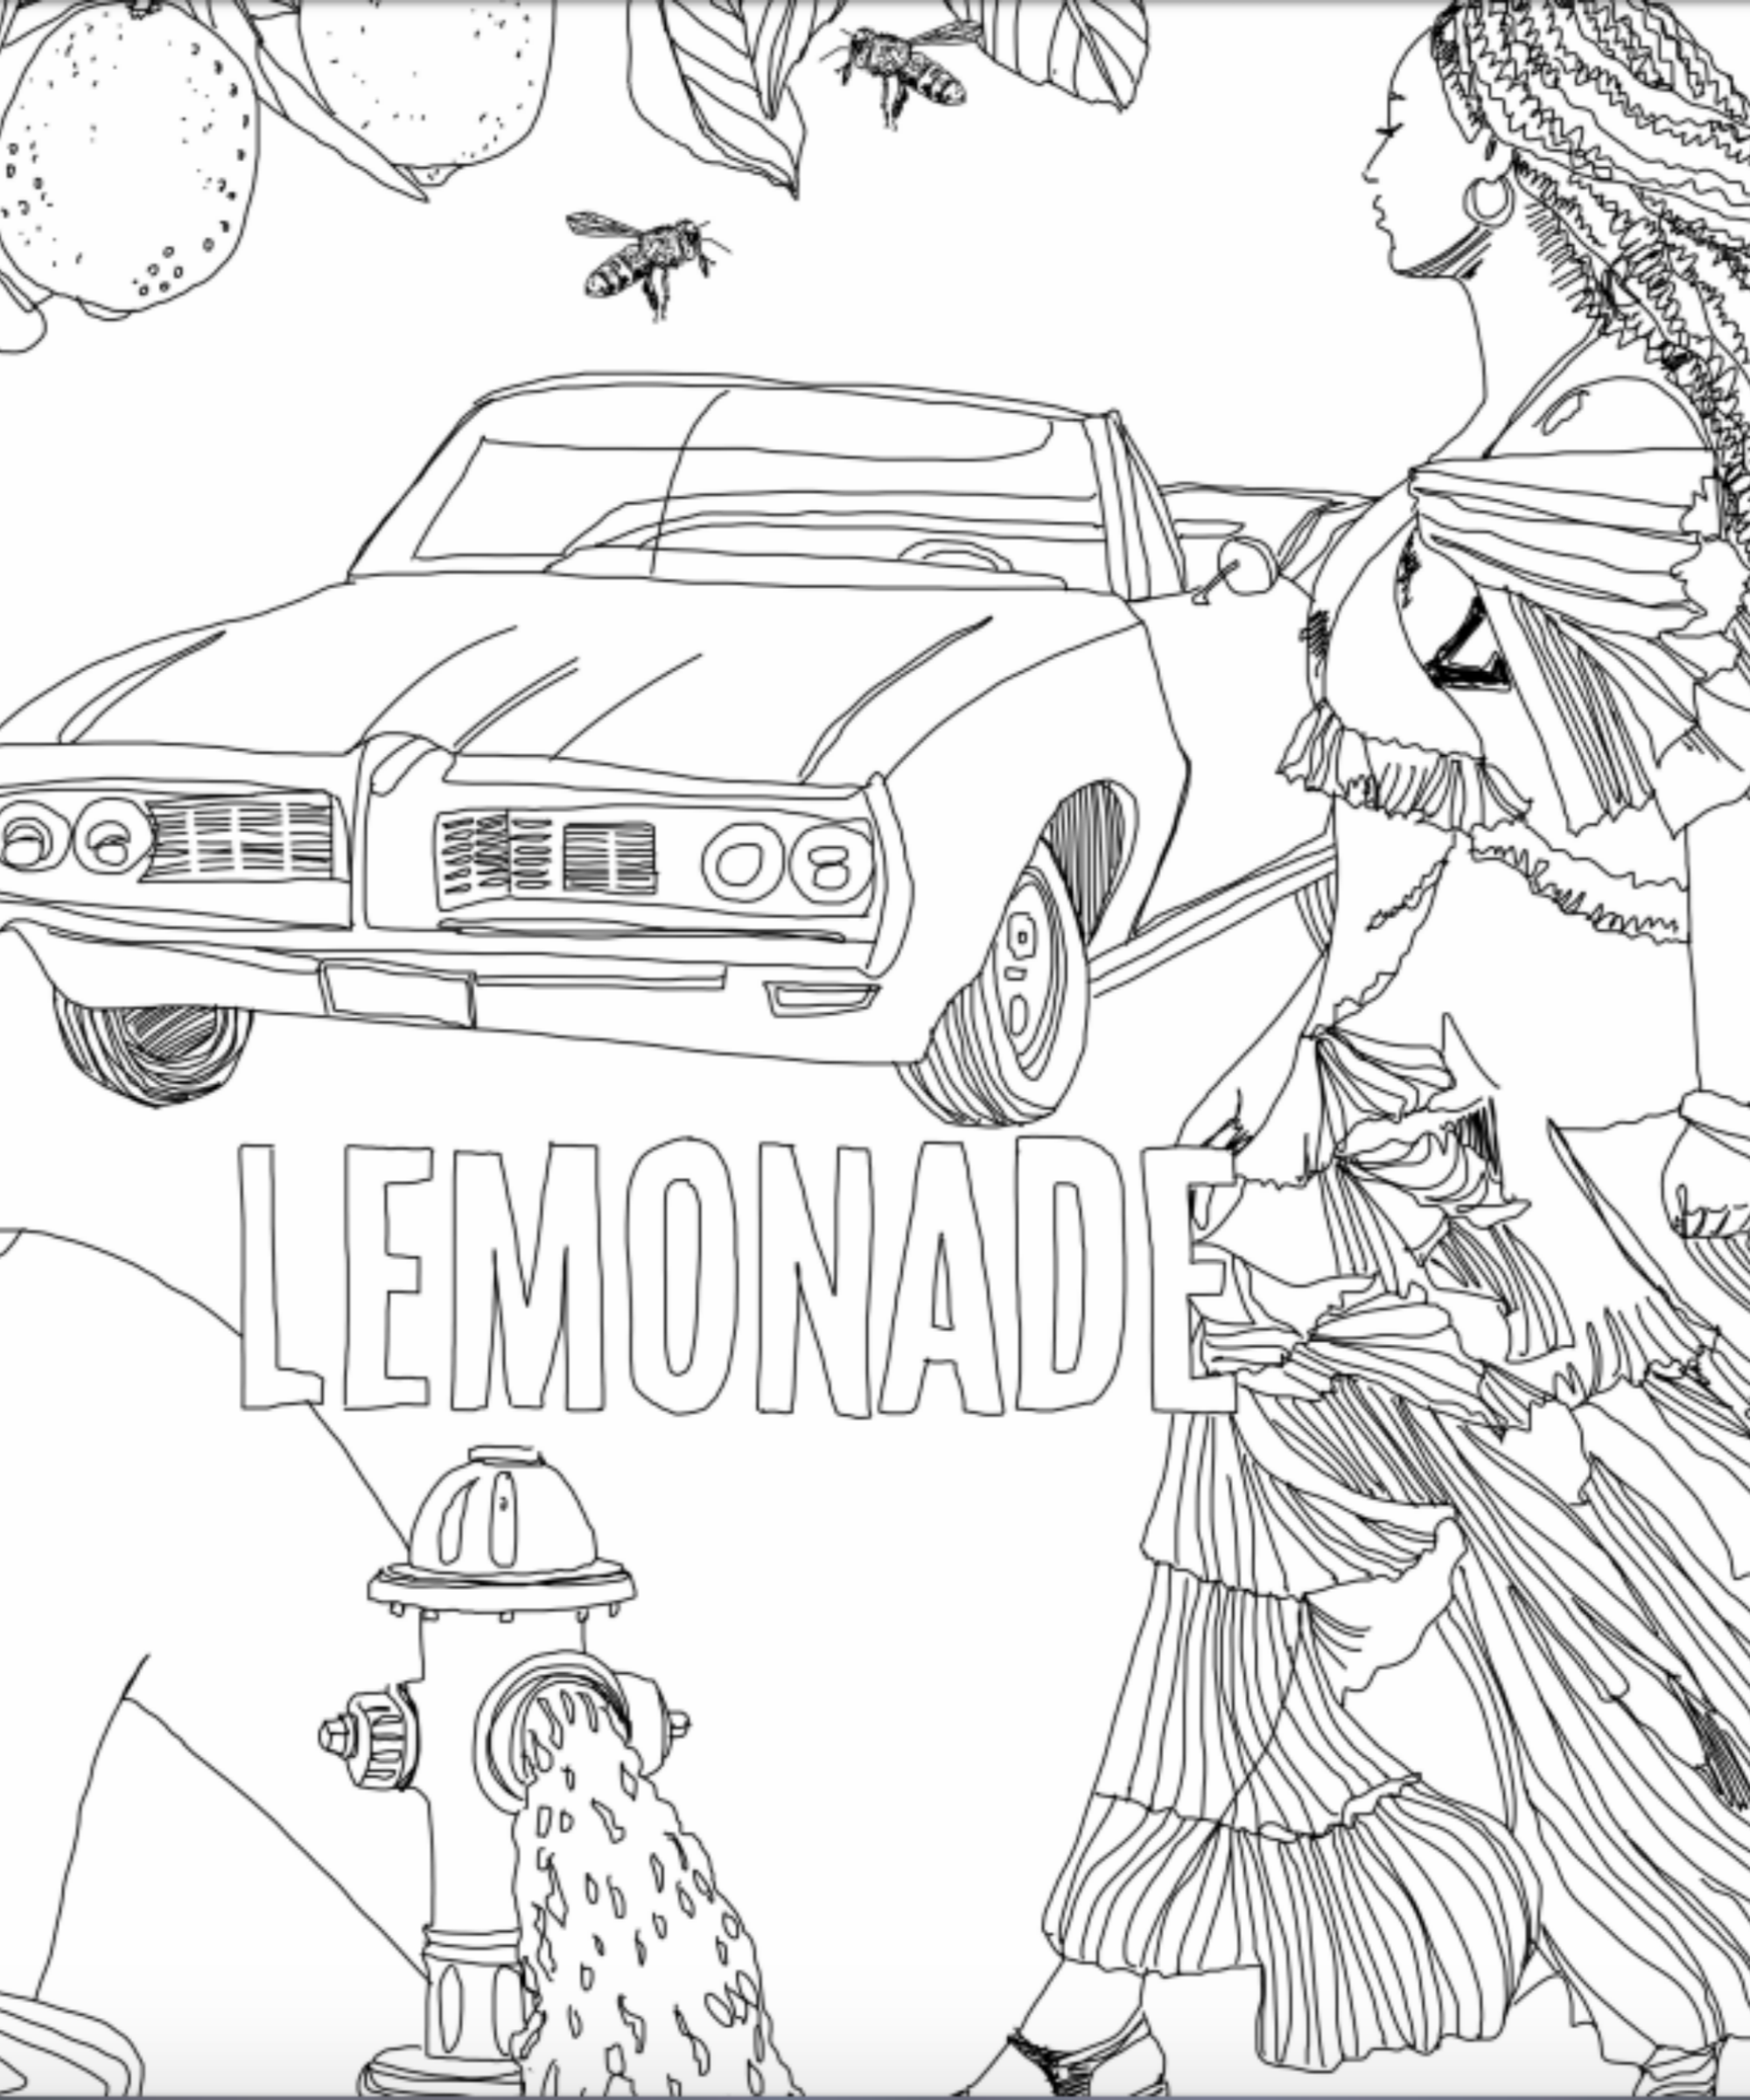 beyonce lemonade coloring book